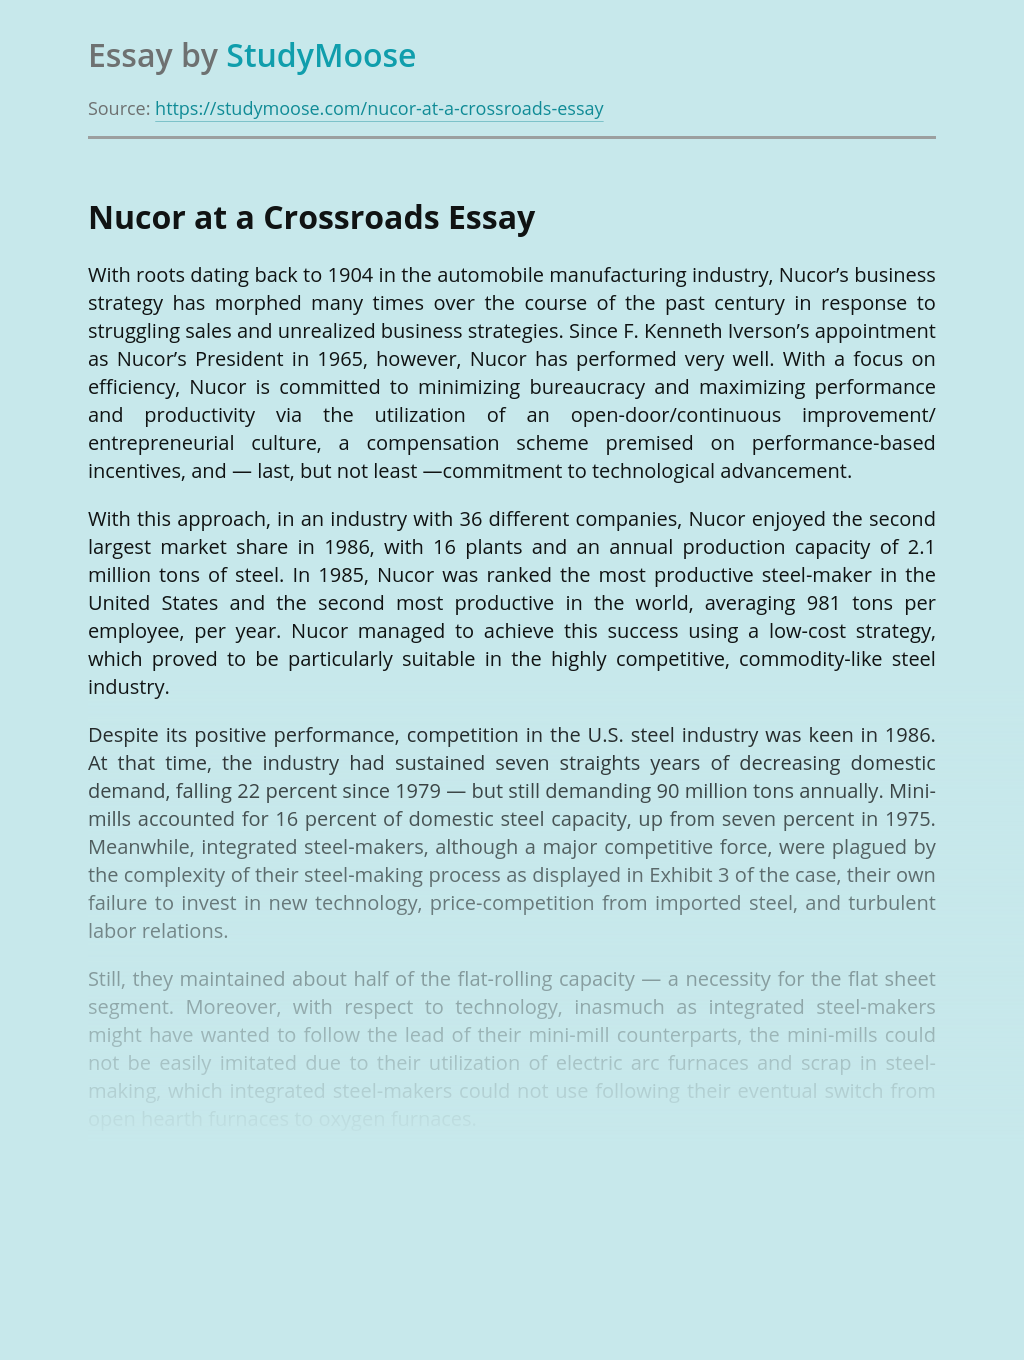 Nucor at a Crossroads Book Review